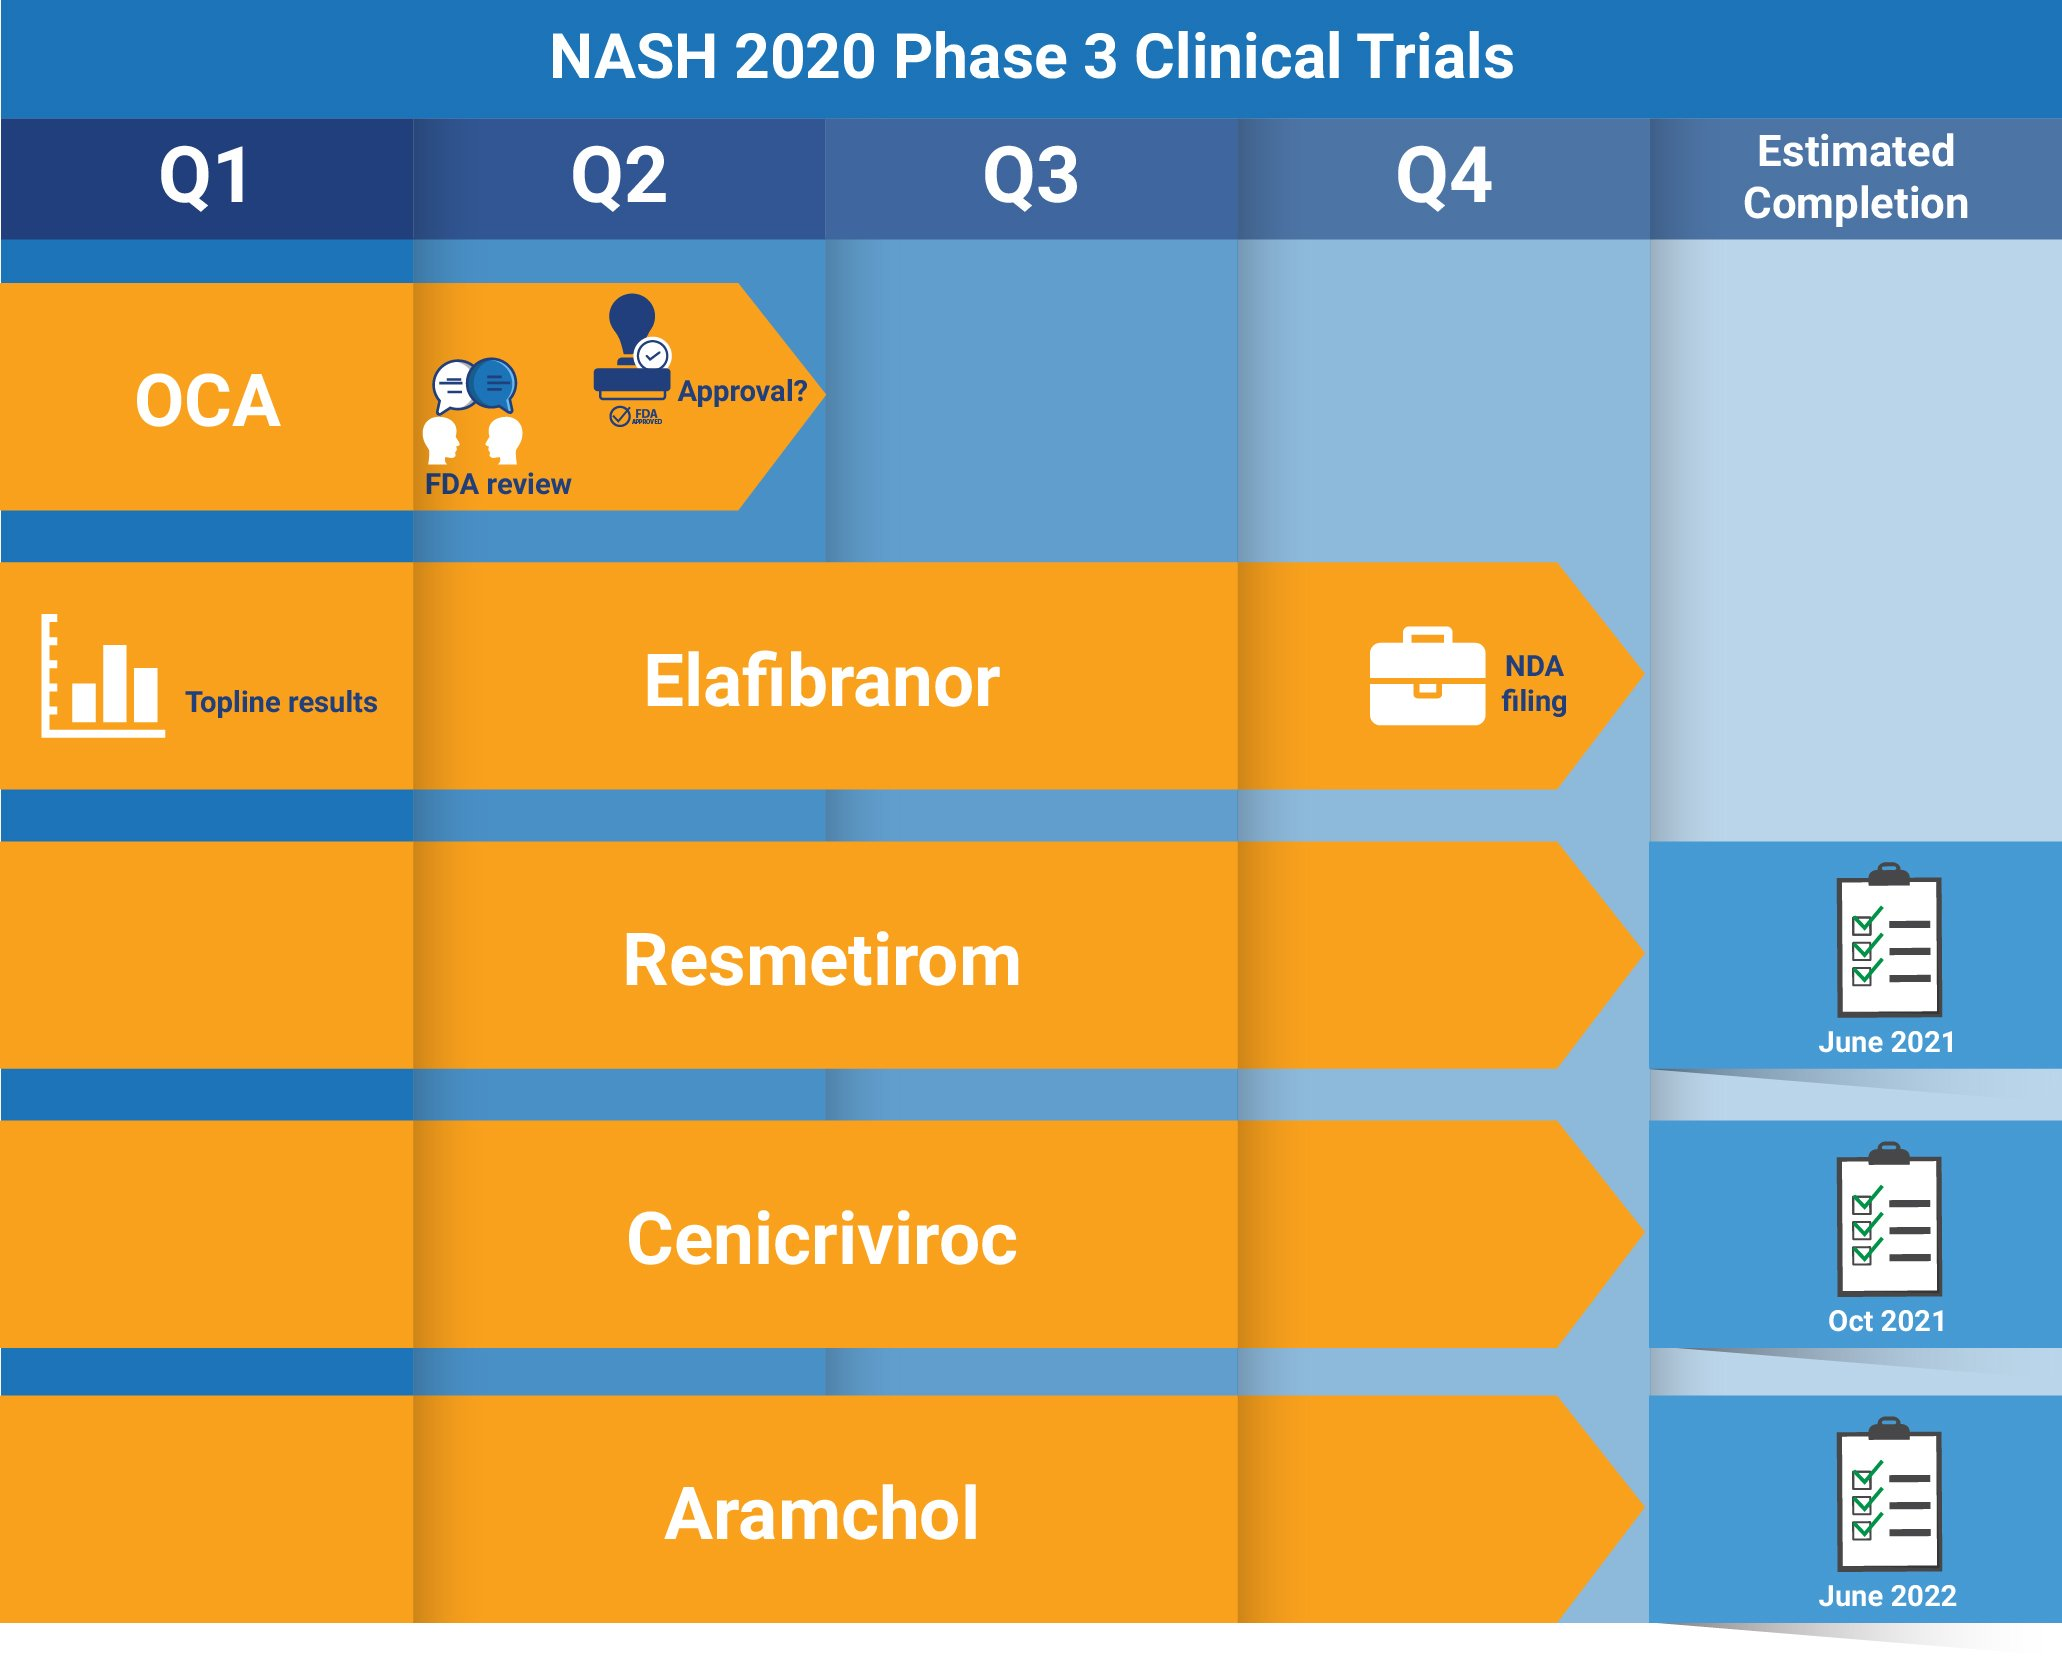 NASH Clinical Update: What to Expect in 2020